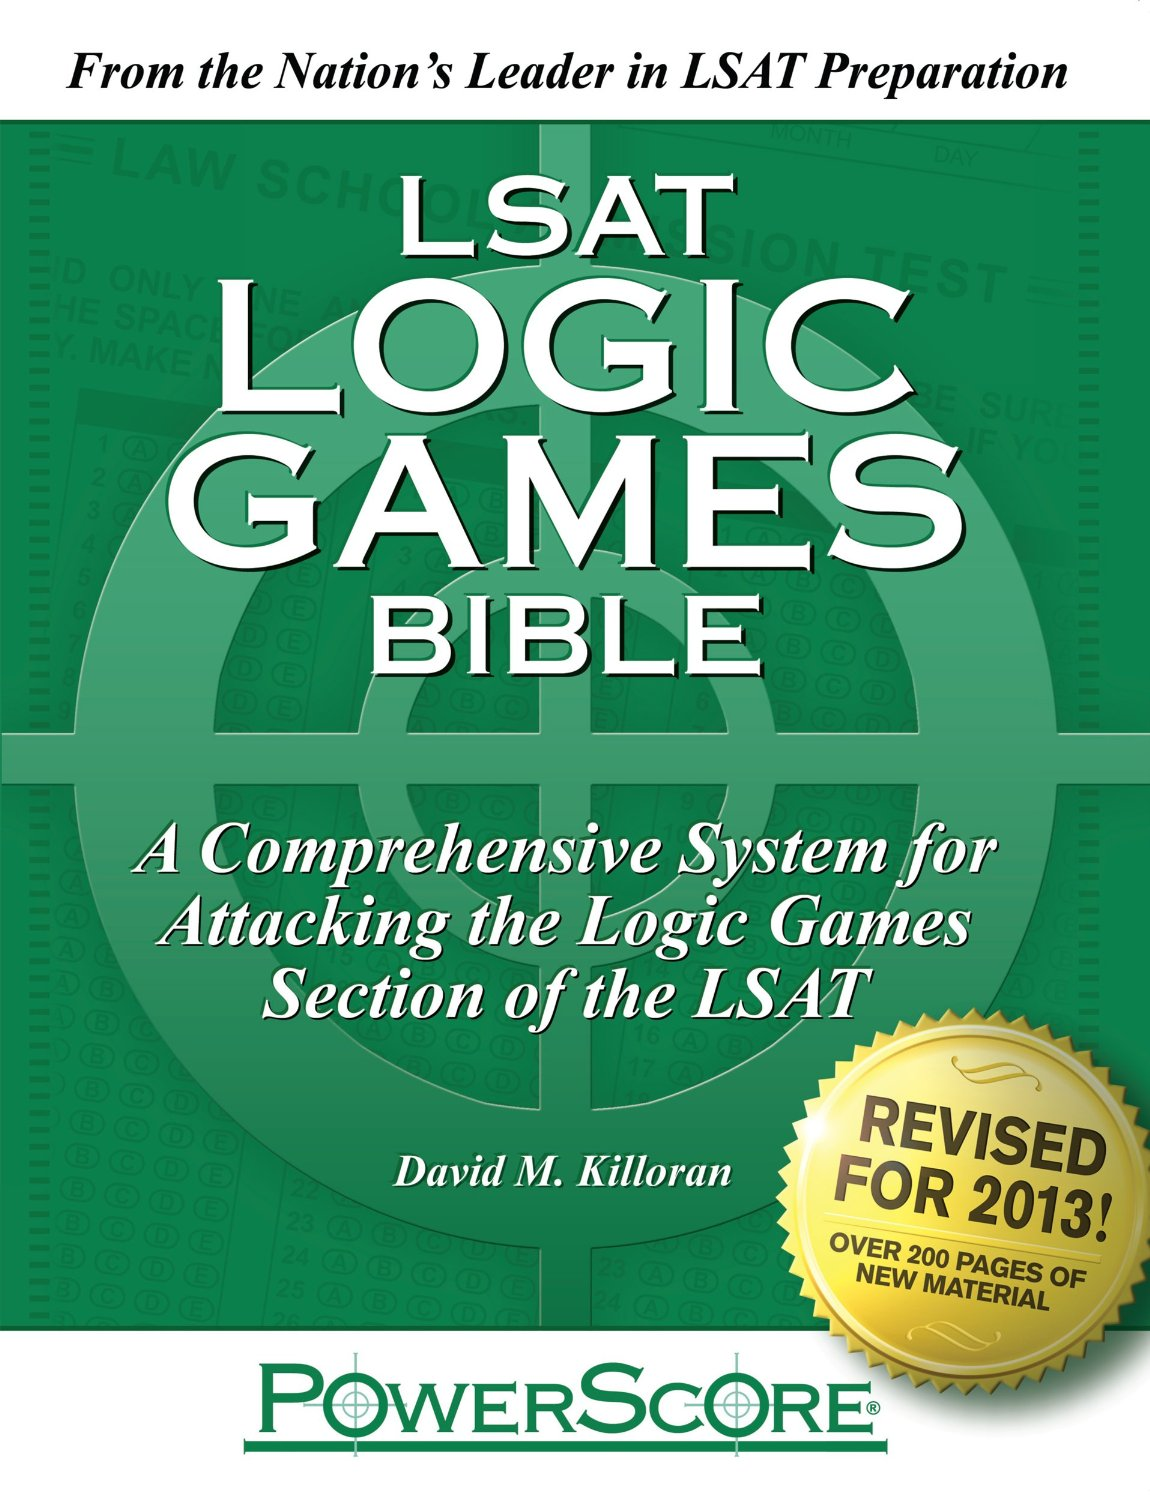 Powerscore lsat logic games bible new 2016 revised edition powerscore lsat logic games bible new 2016 revised edition lsat prep book reviews malvernweather